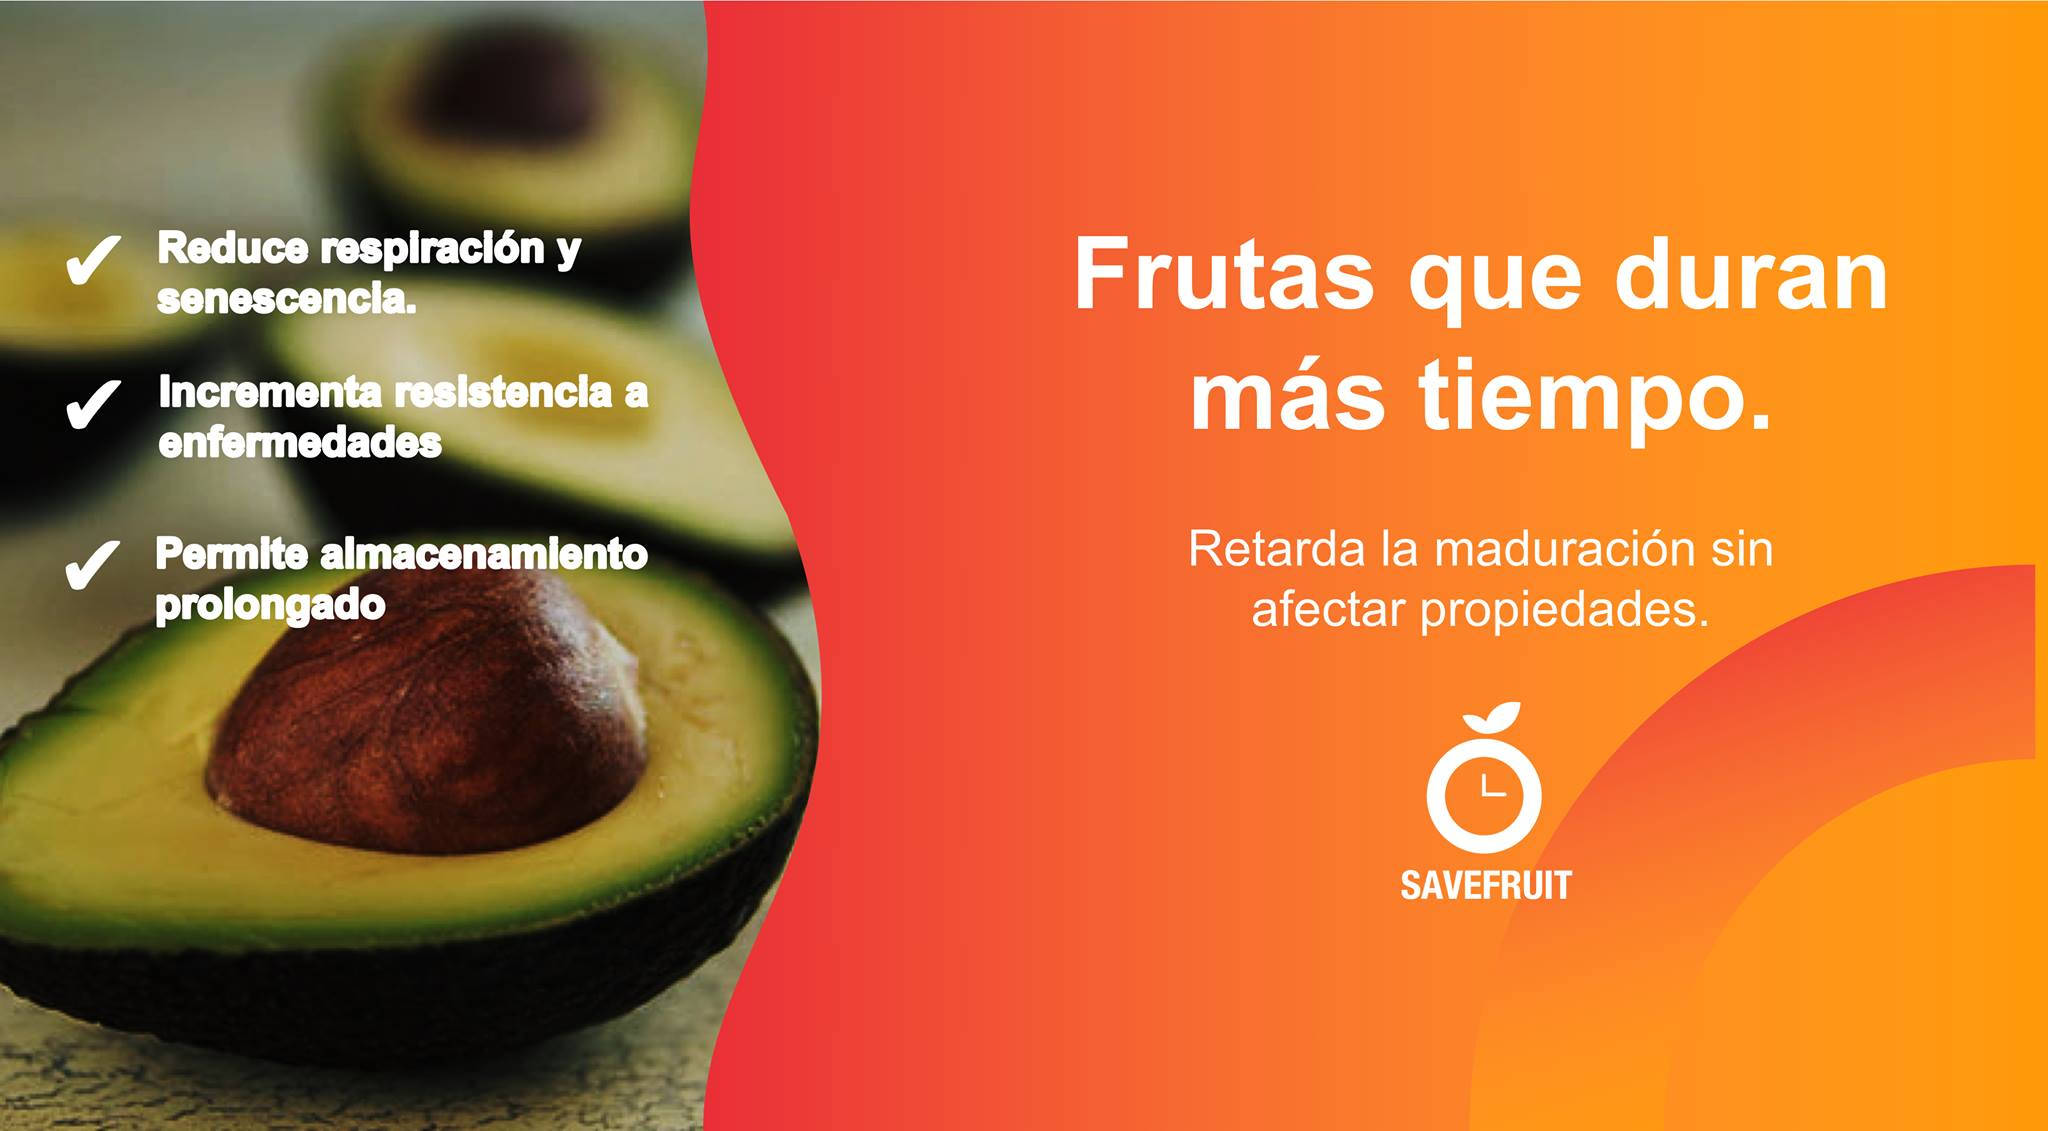 Save fruit